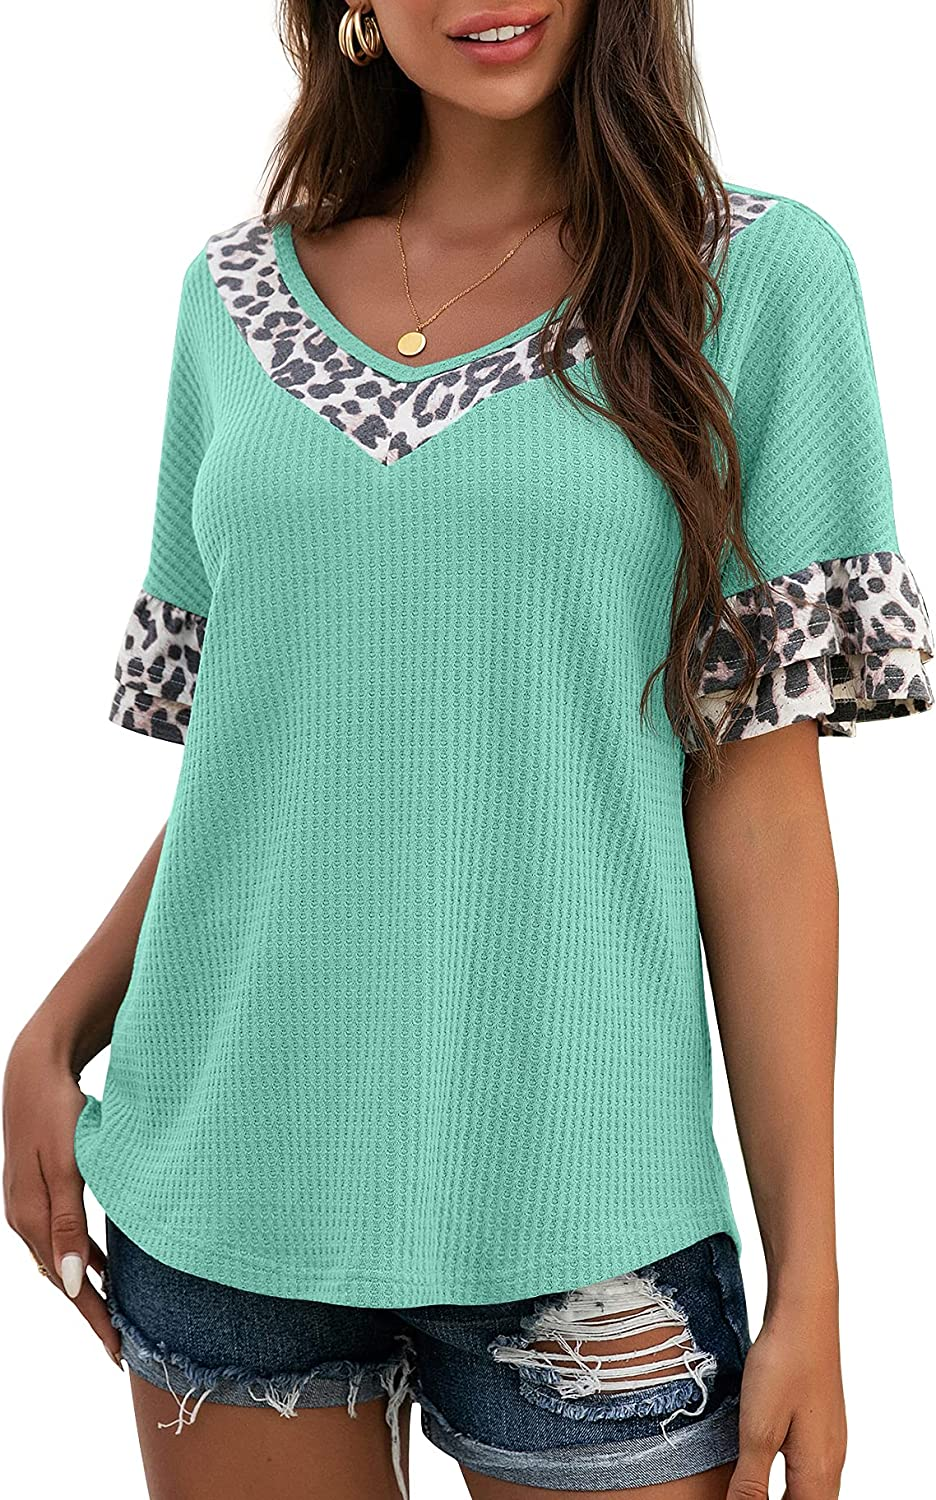 IWOLLENCE Women's Waffle Knit Leopard V Neck Top Ruffle Short Sleeves Casual Summer Blouse